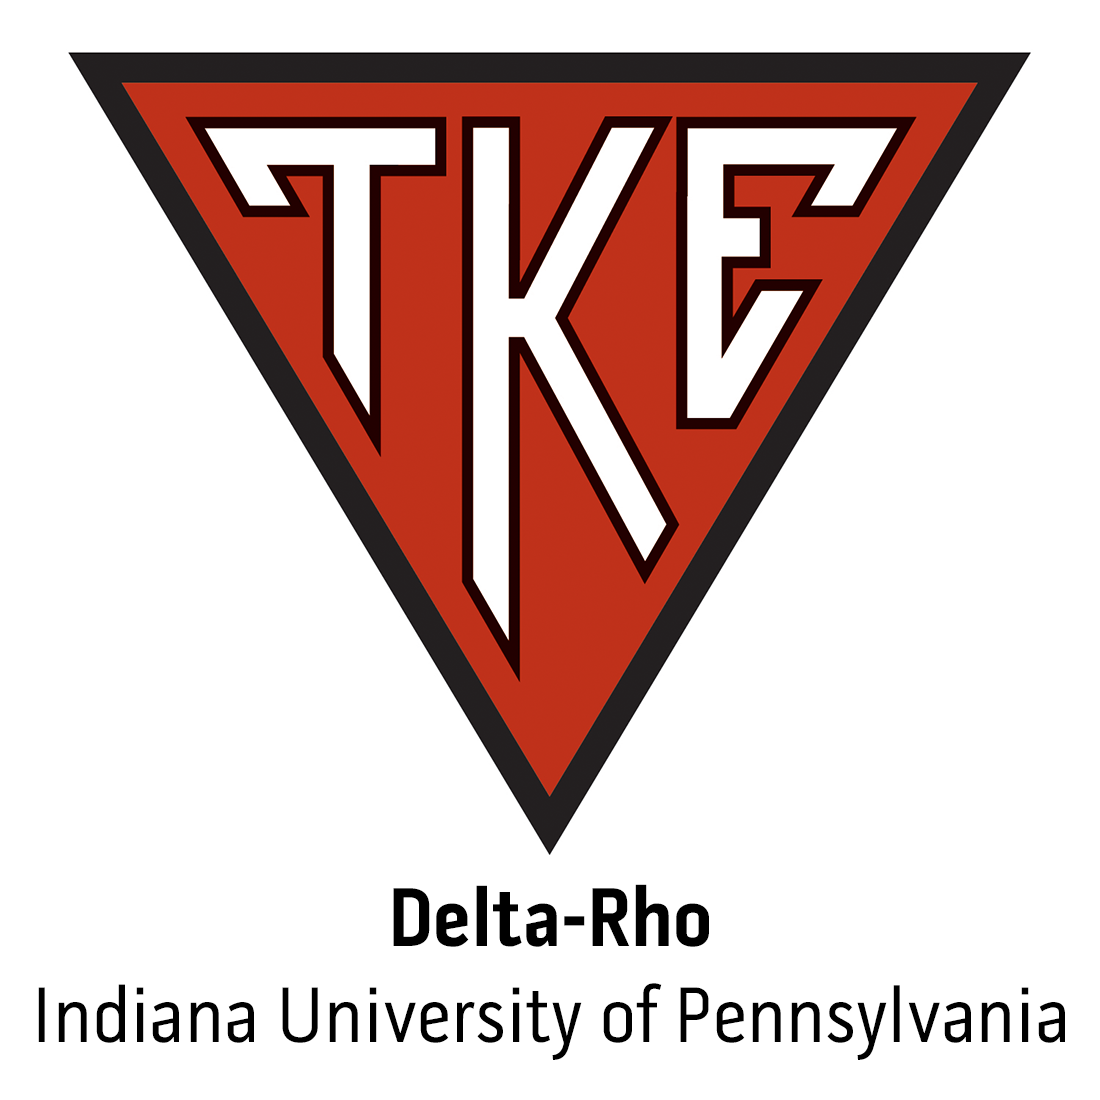 Delta-Rho Chapter at Indiana University of Pennsylvania